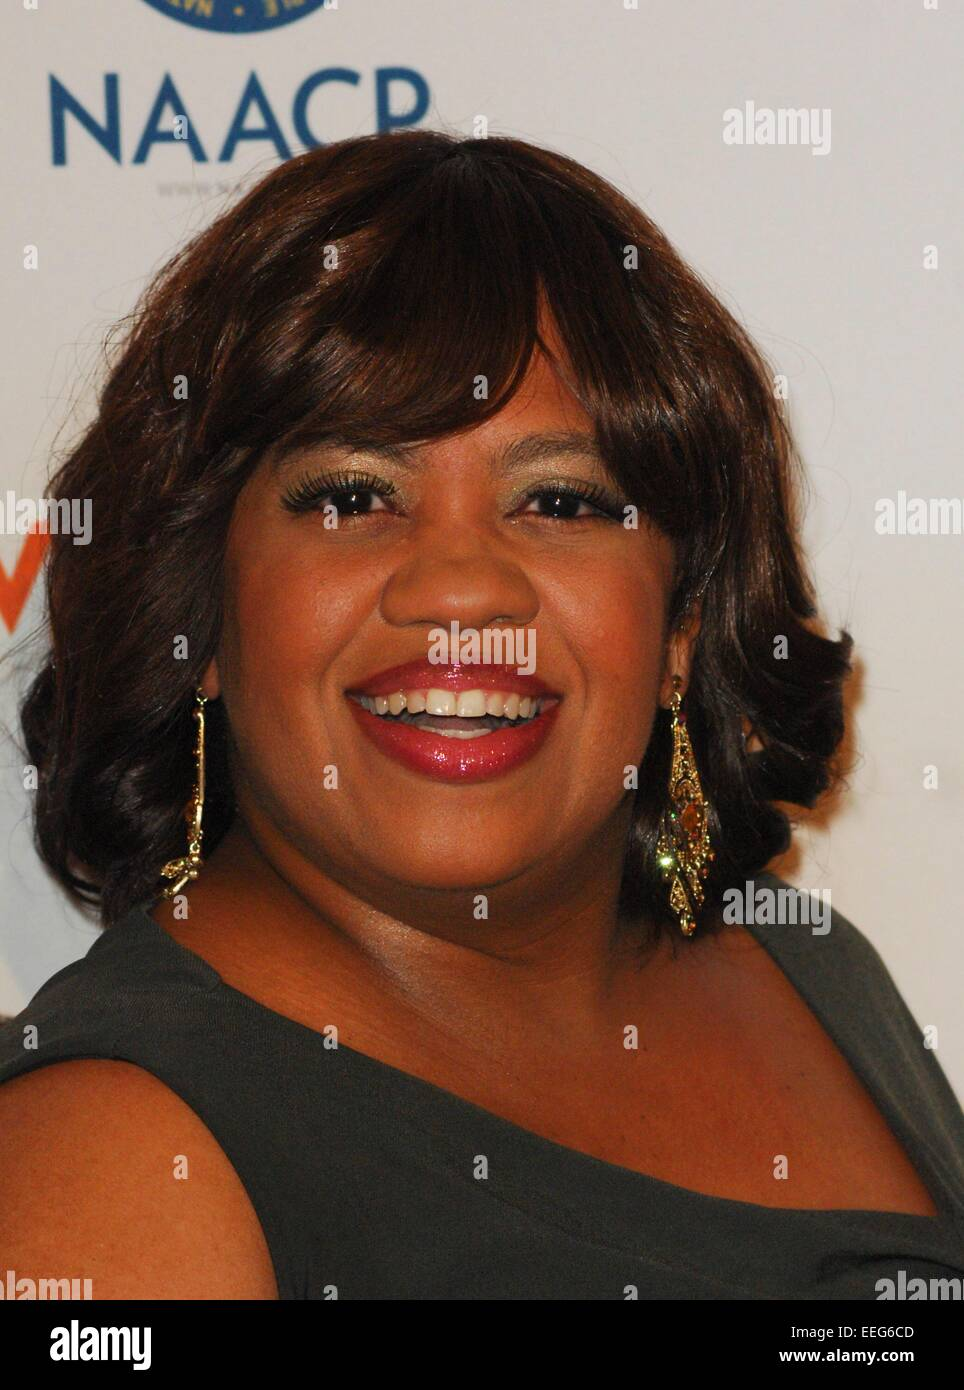 Beverly Hills, CA. 17th Jan, 2015. Chandra Wilson at arrivals for The 46th NAACP Image Awards Nominees' Luncheon, Stock Photo